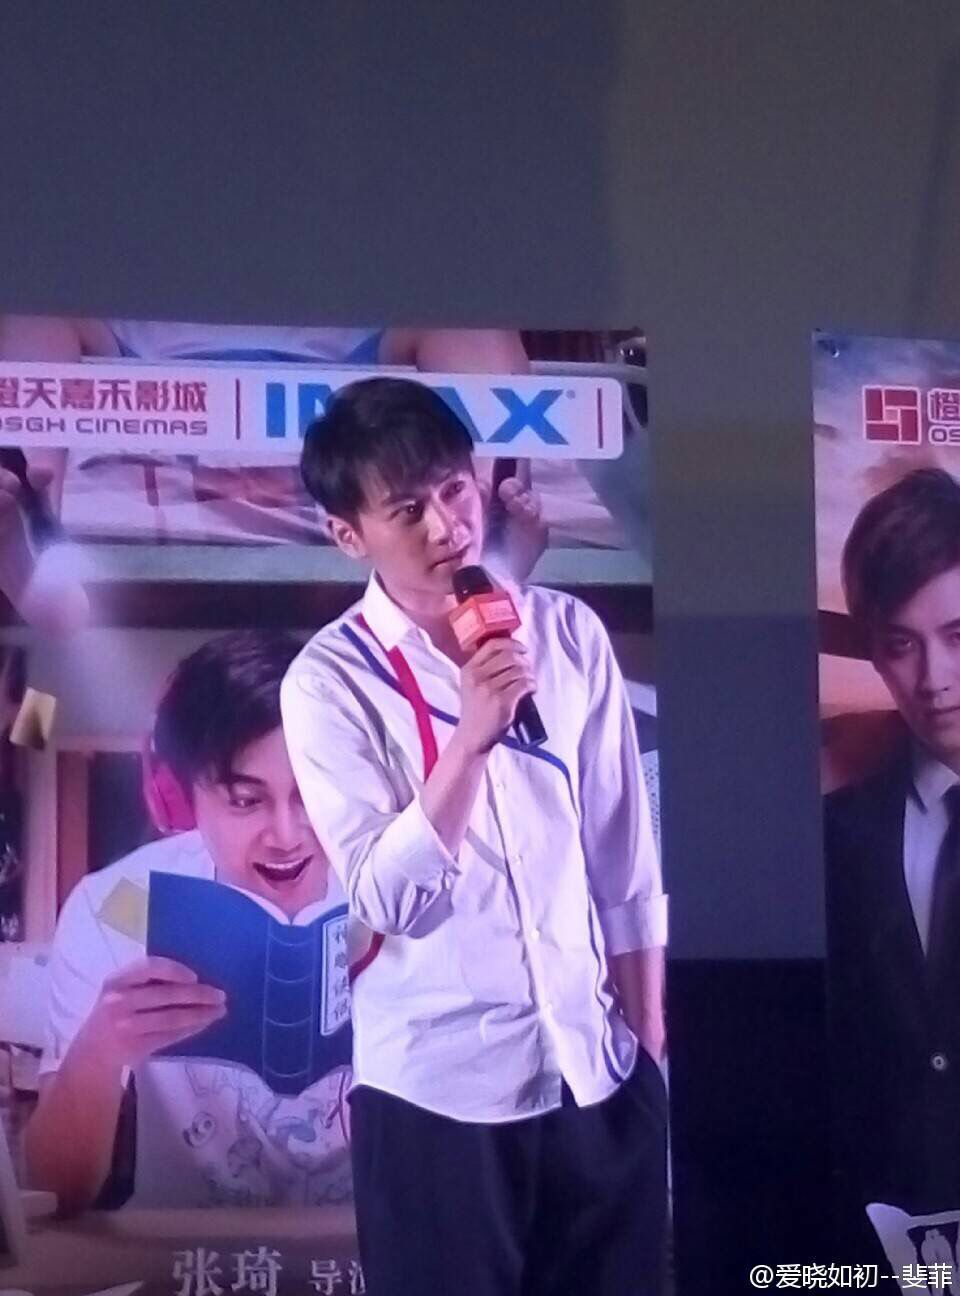 Chen Xiao 陈晓 Chinese Actor (From weibo)